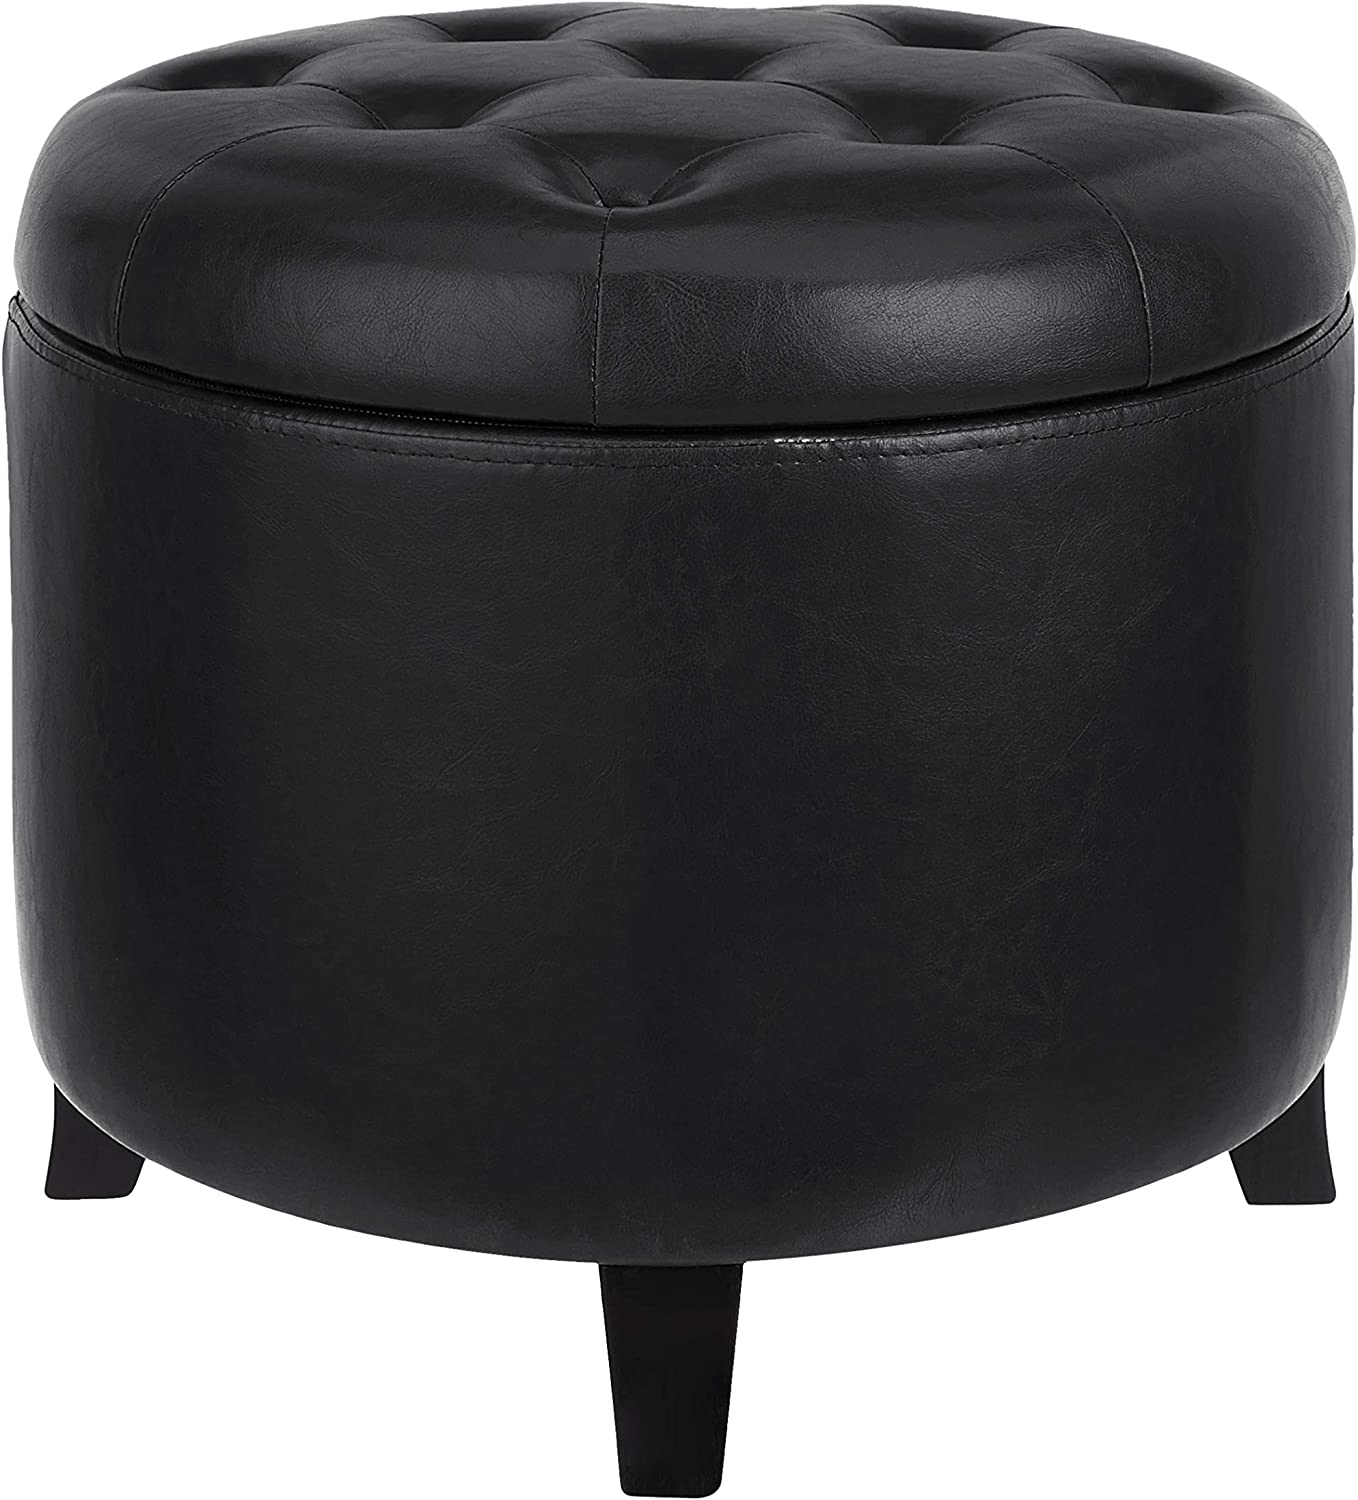 First Hill Comfort Round buckle reserve stool chair, Black Faux leather